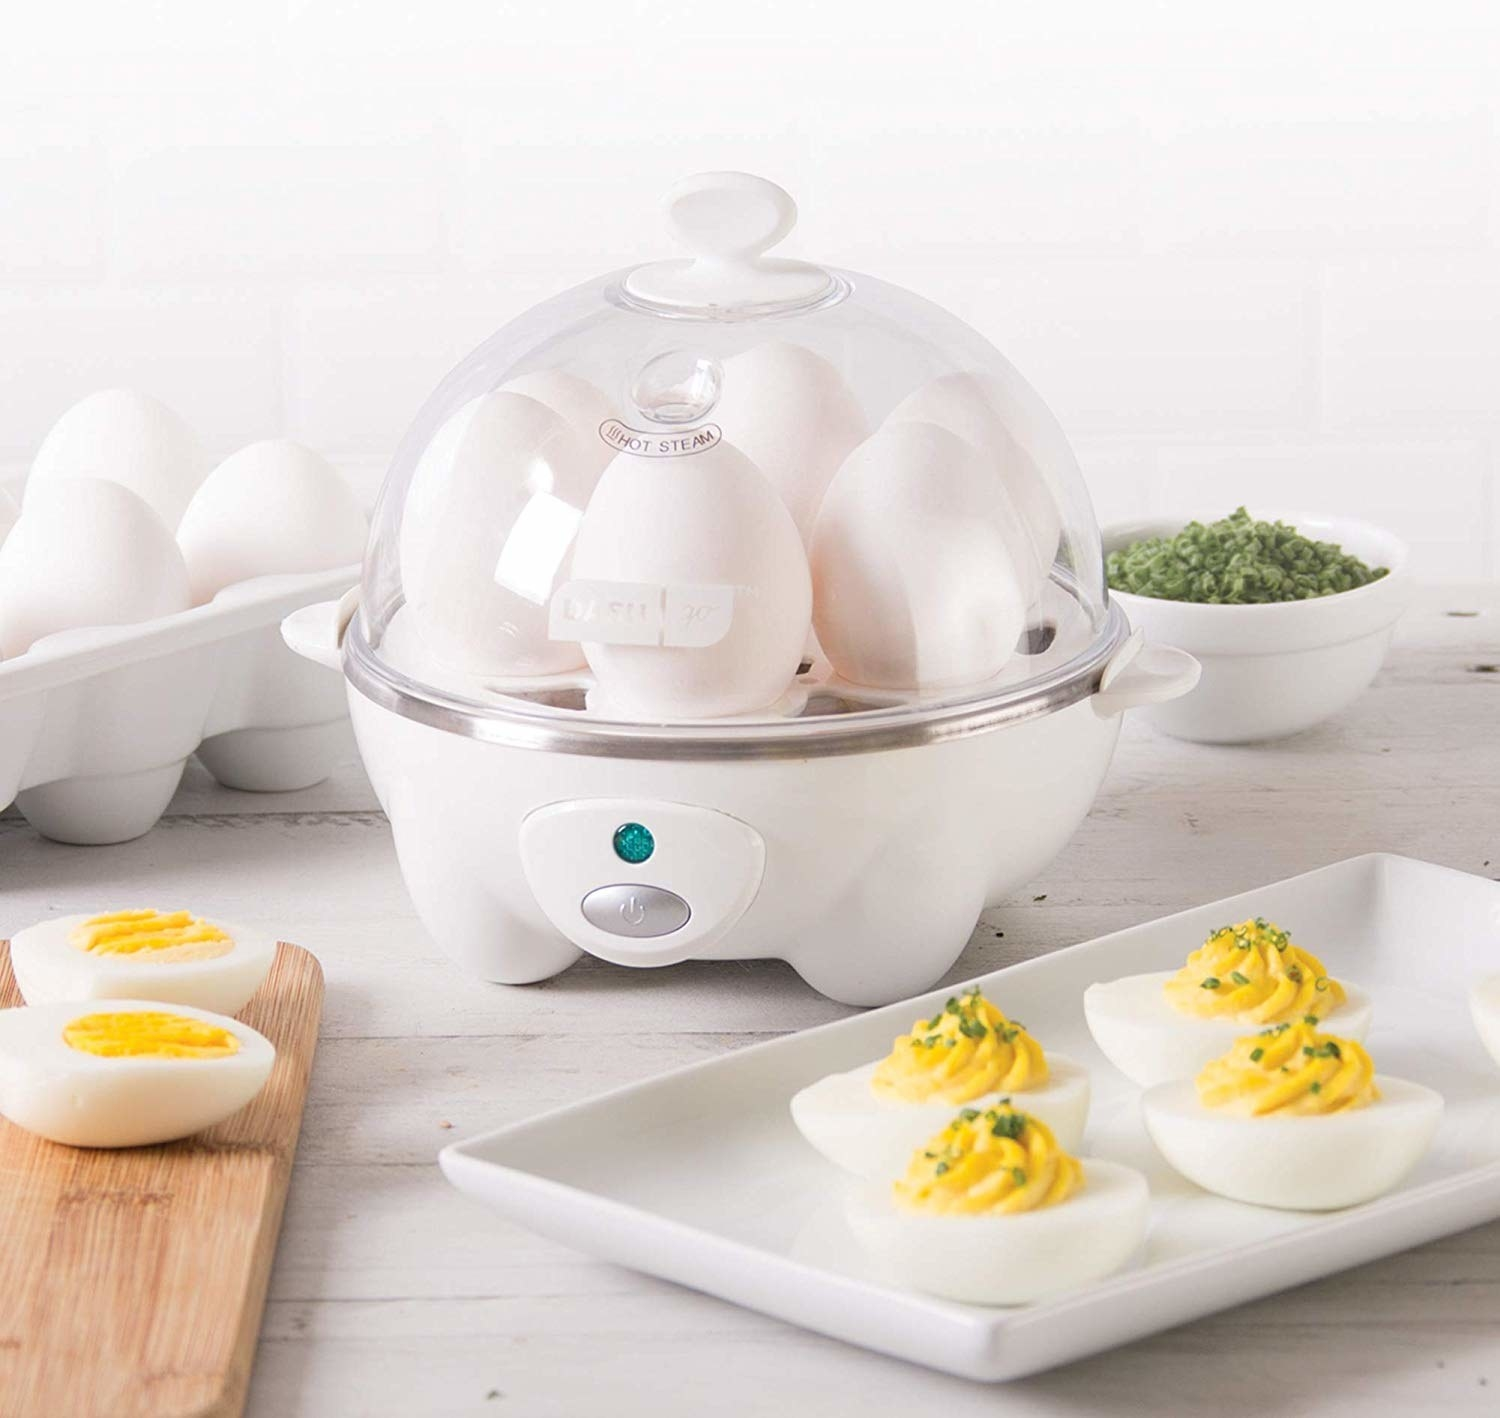 An egg cooker with a transparent dome plastic top, where six eggs are cooking inside